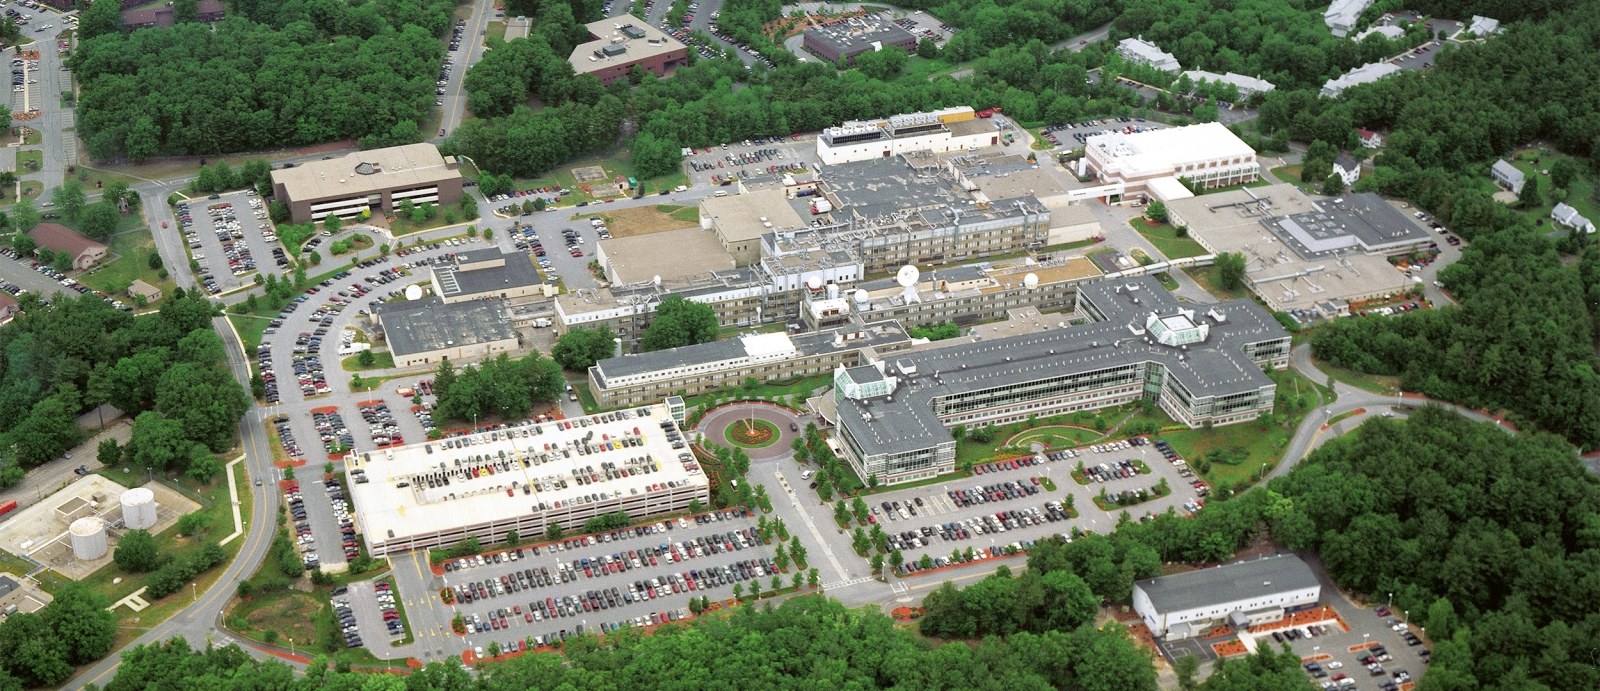 The Lincoln Laboratory main campus in Lexington, Massachusetts, comprises 17 buildings.